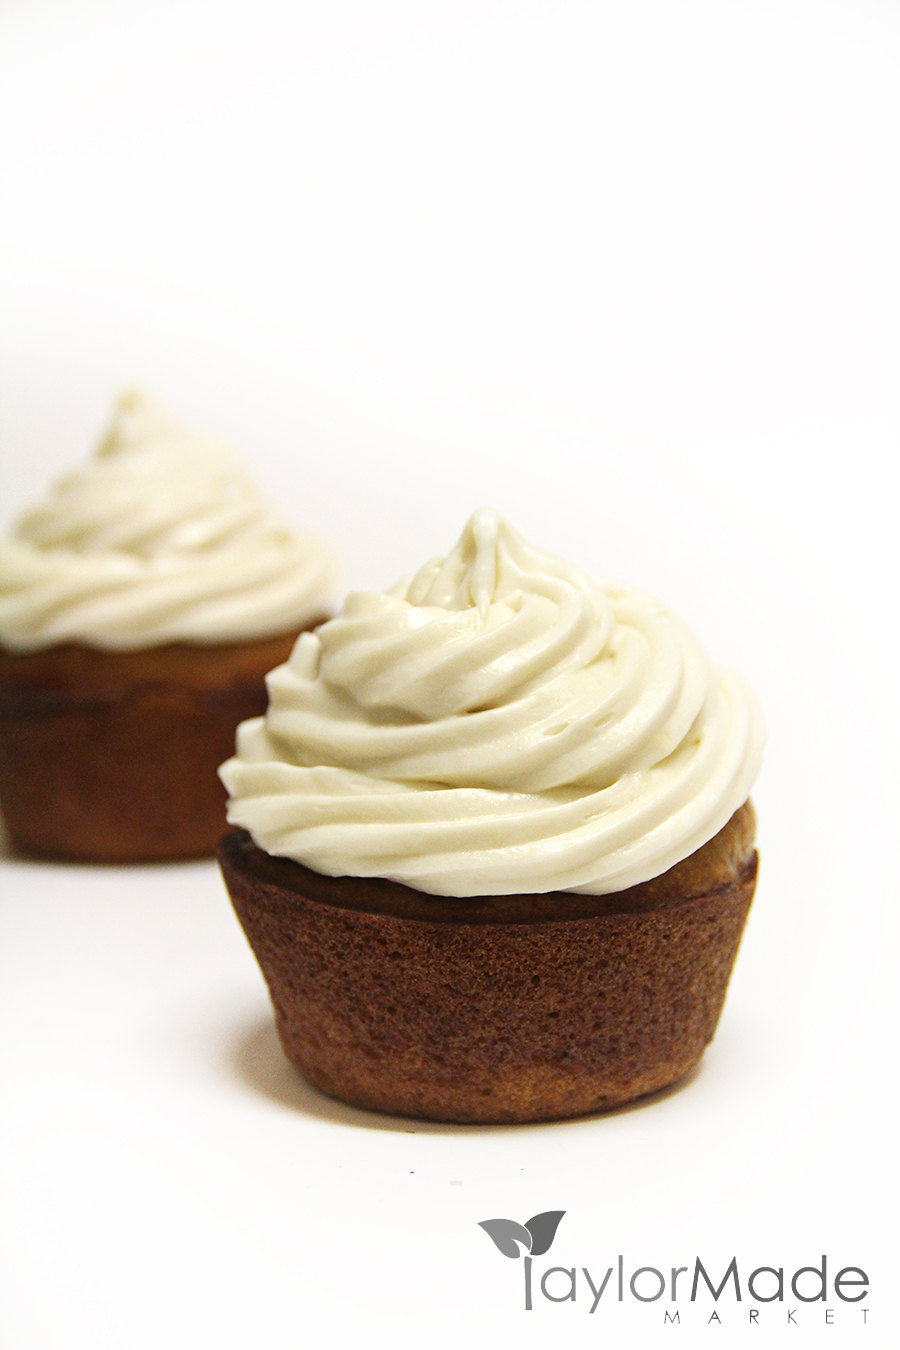 cupcake frosted on white vertical